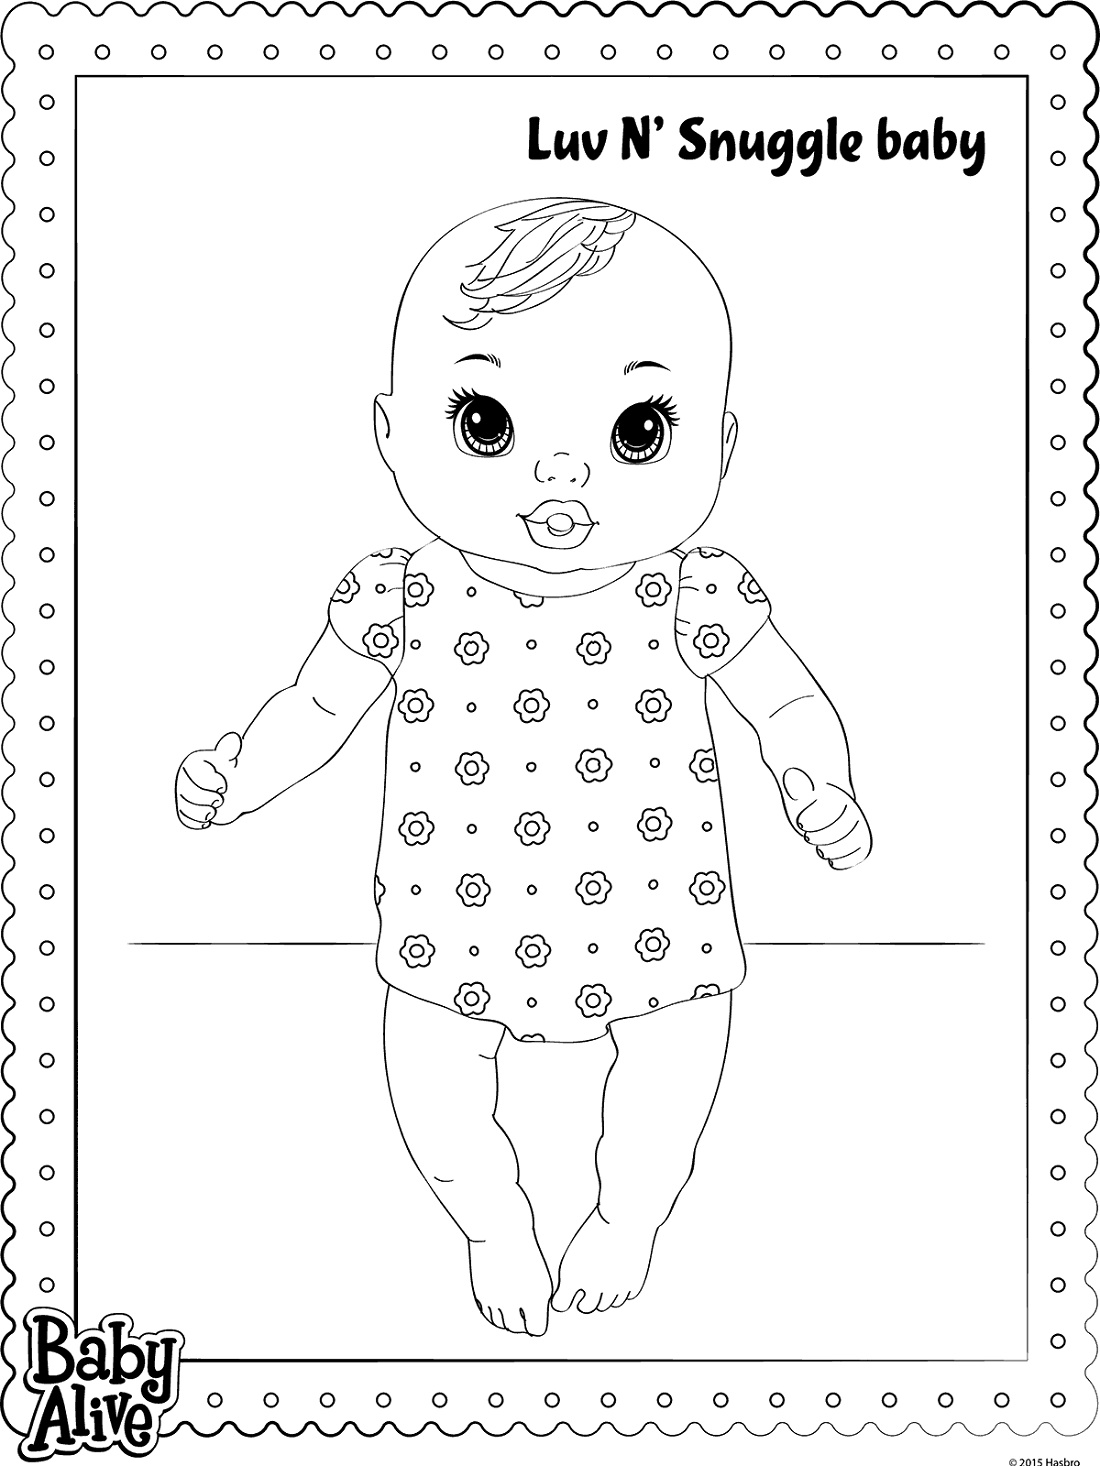 Baby Alive Coloring Pages Luv N' Snuggle Baby